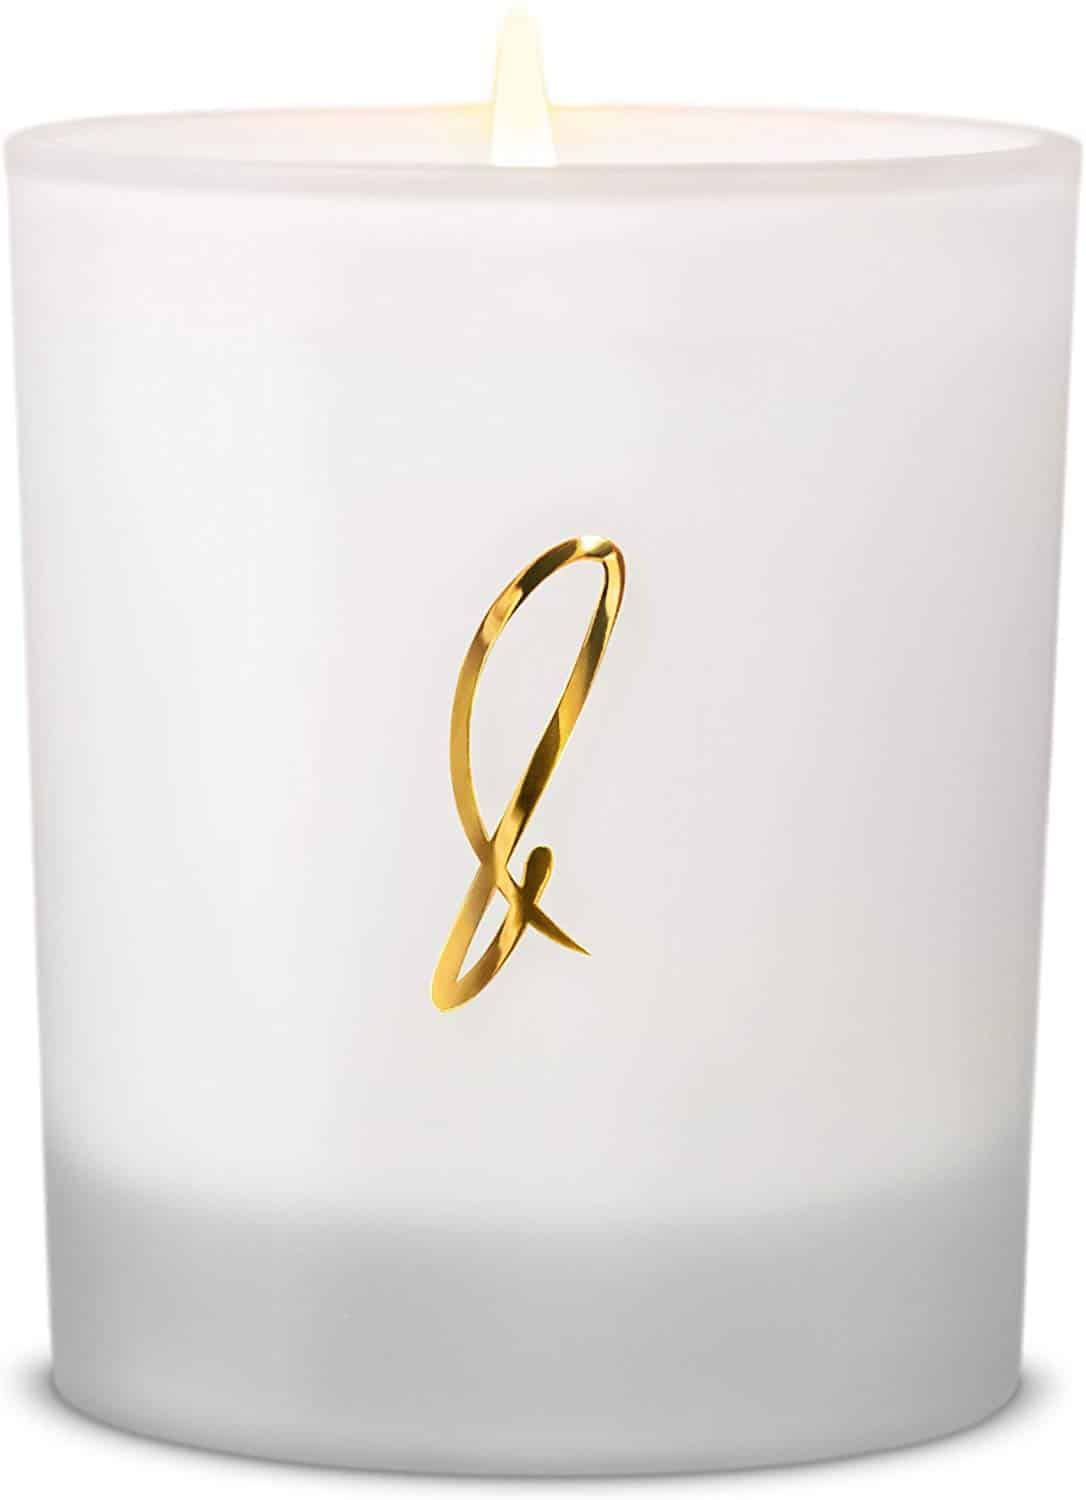 Craft & Kin Vanilla Bean Soy Wax Candle